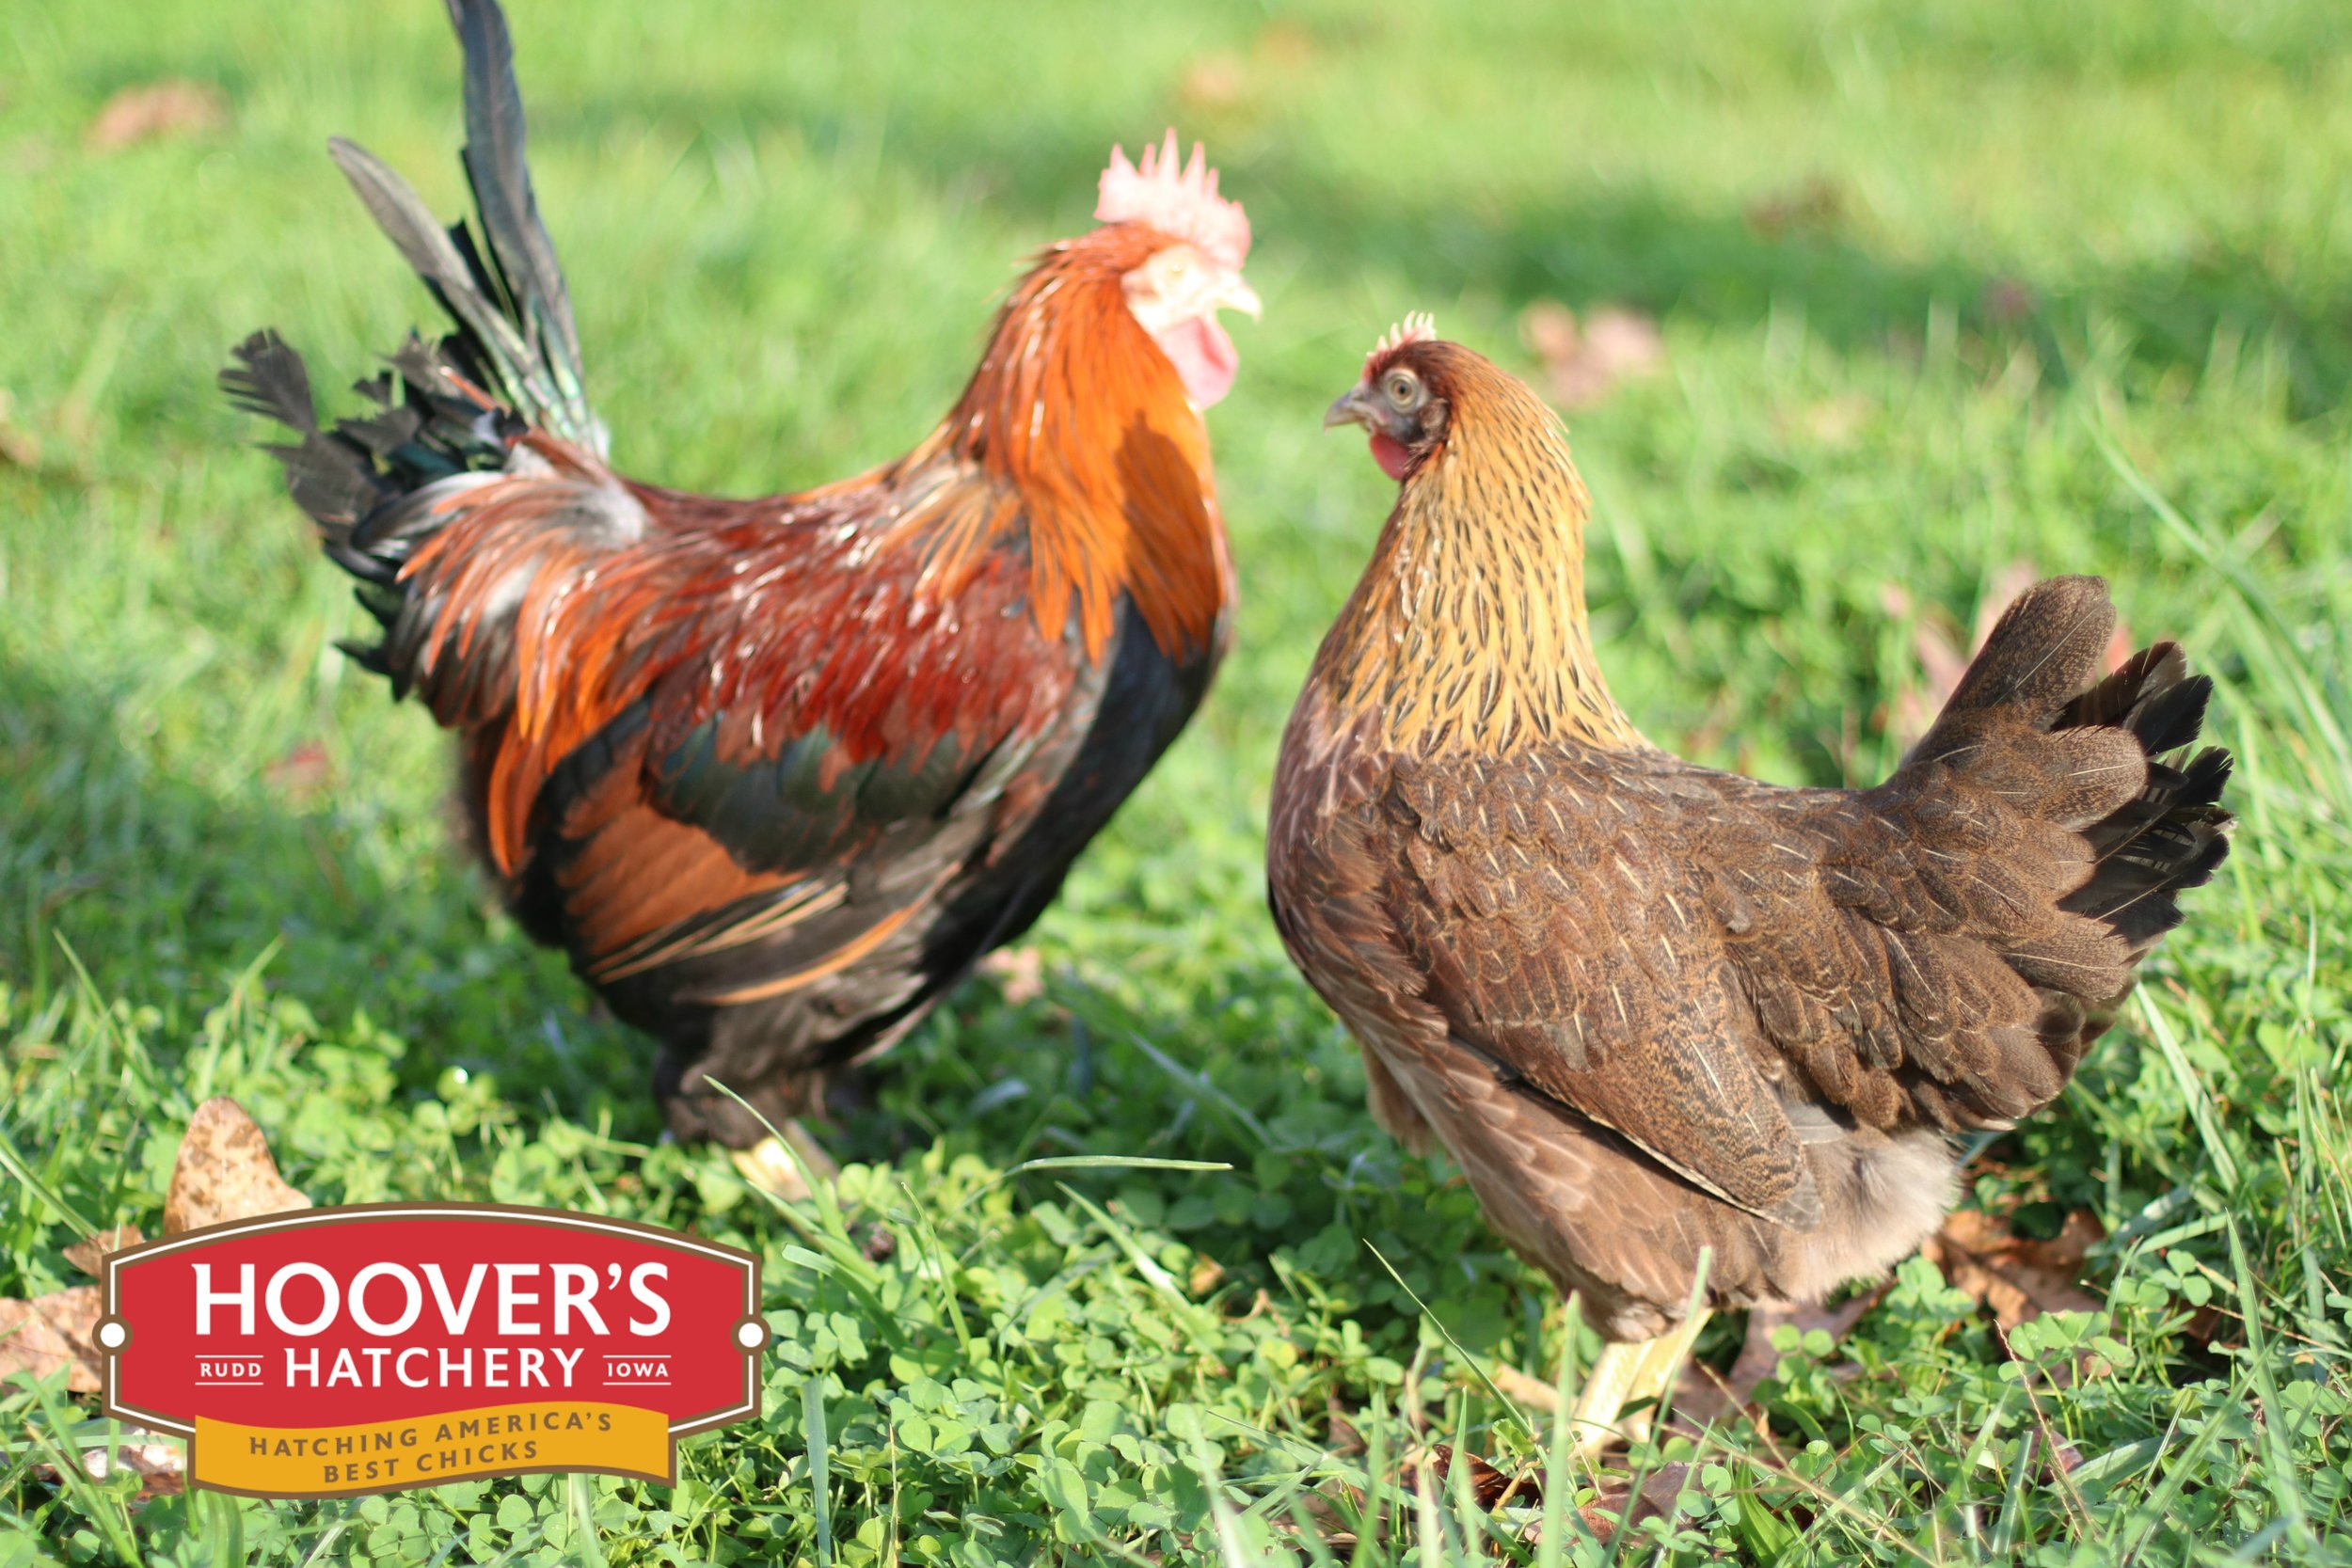 Welsummer - The Welsummer hen lays large eggs which are a terracotta dark brown, often with dark speckles. It is a light, friendly, and intelligent breed, with rustic-red and orange color. Like the Marans the Welsummer tends to be more athletic, taking to foraging and free ranging more often than other breeds. APPROX. 250 LARGE EGGS/YEAR | EGG COLOR: DARKER BROWN | MATURE WT: MALE 6 LBS. FEMALE 4.5 LBS